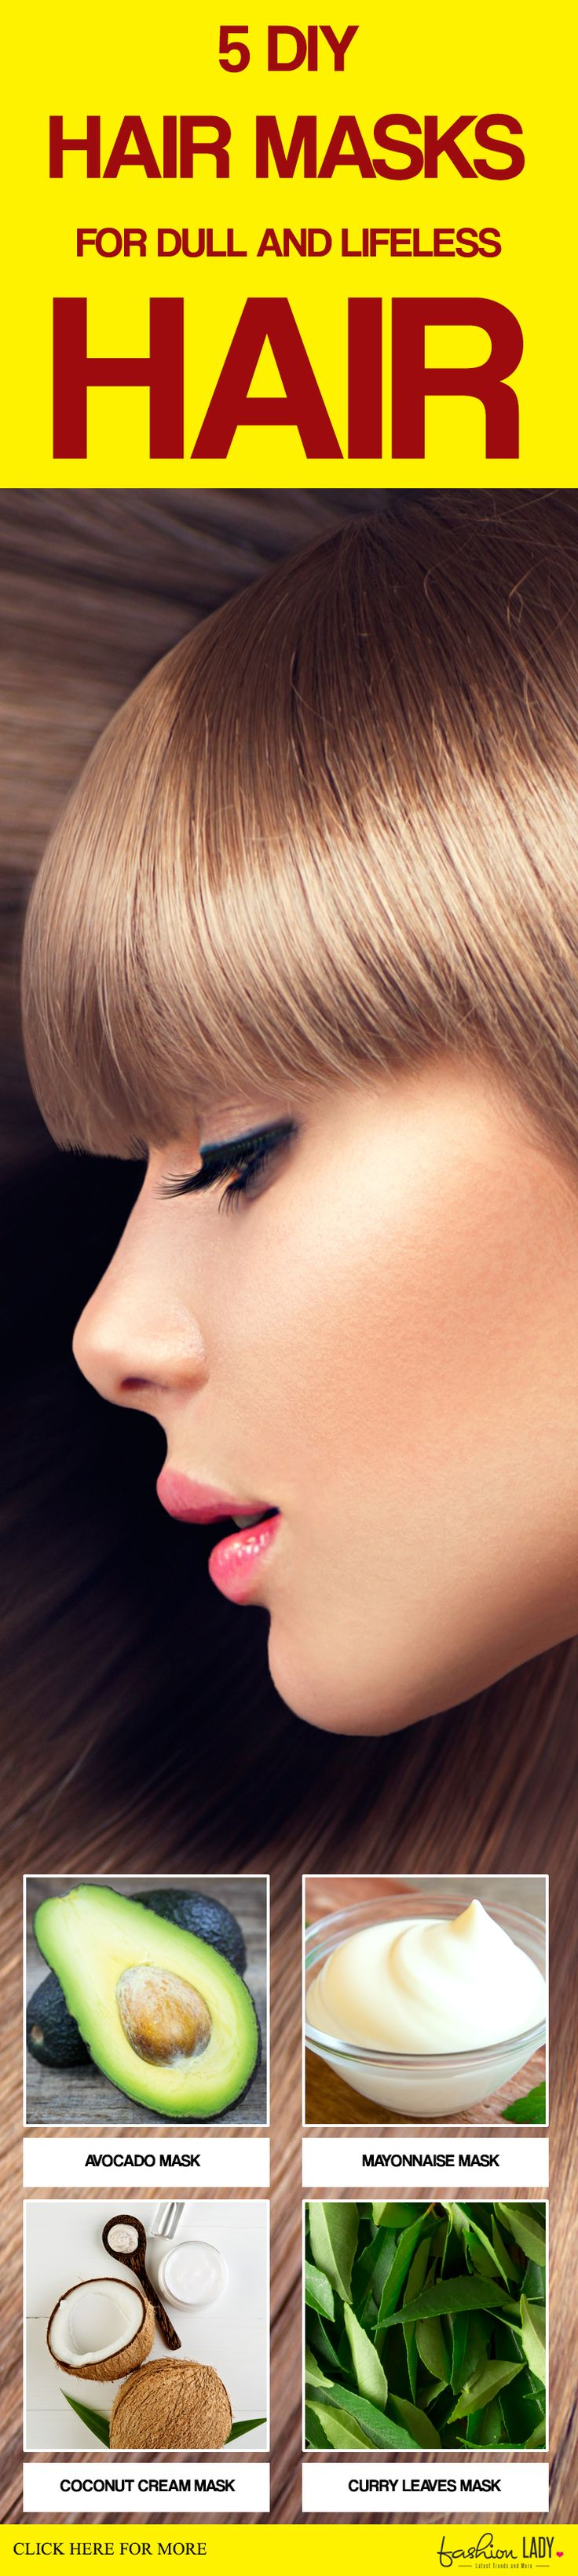 best tips to try in hair and beauty images on pinterest beauty